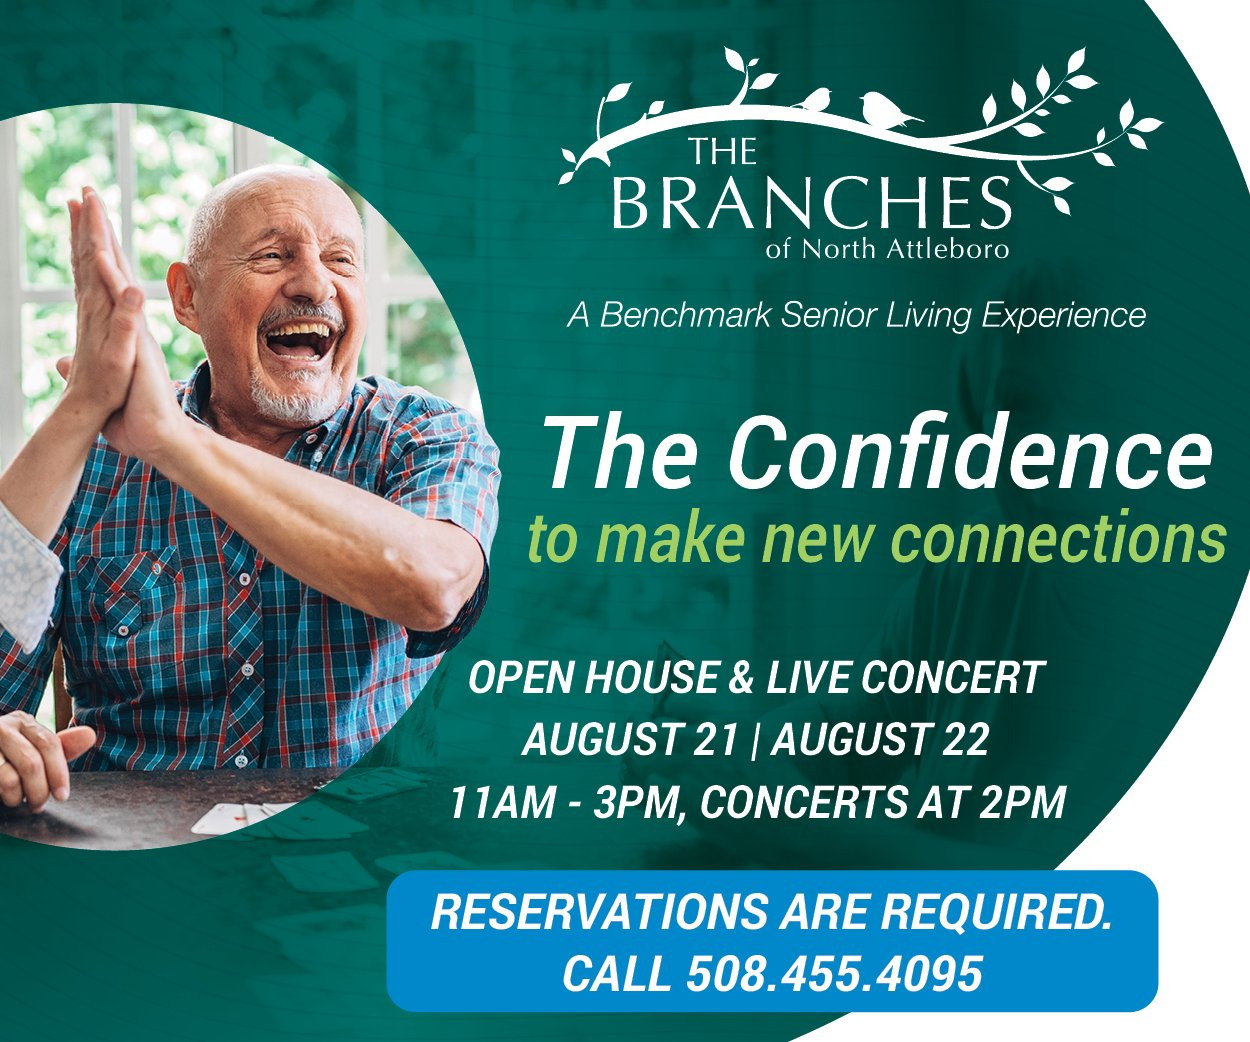 The branches open house and live concert august 21st and 22nd